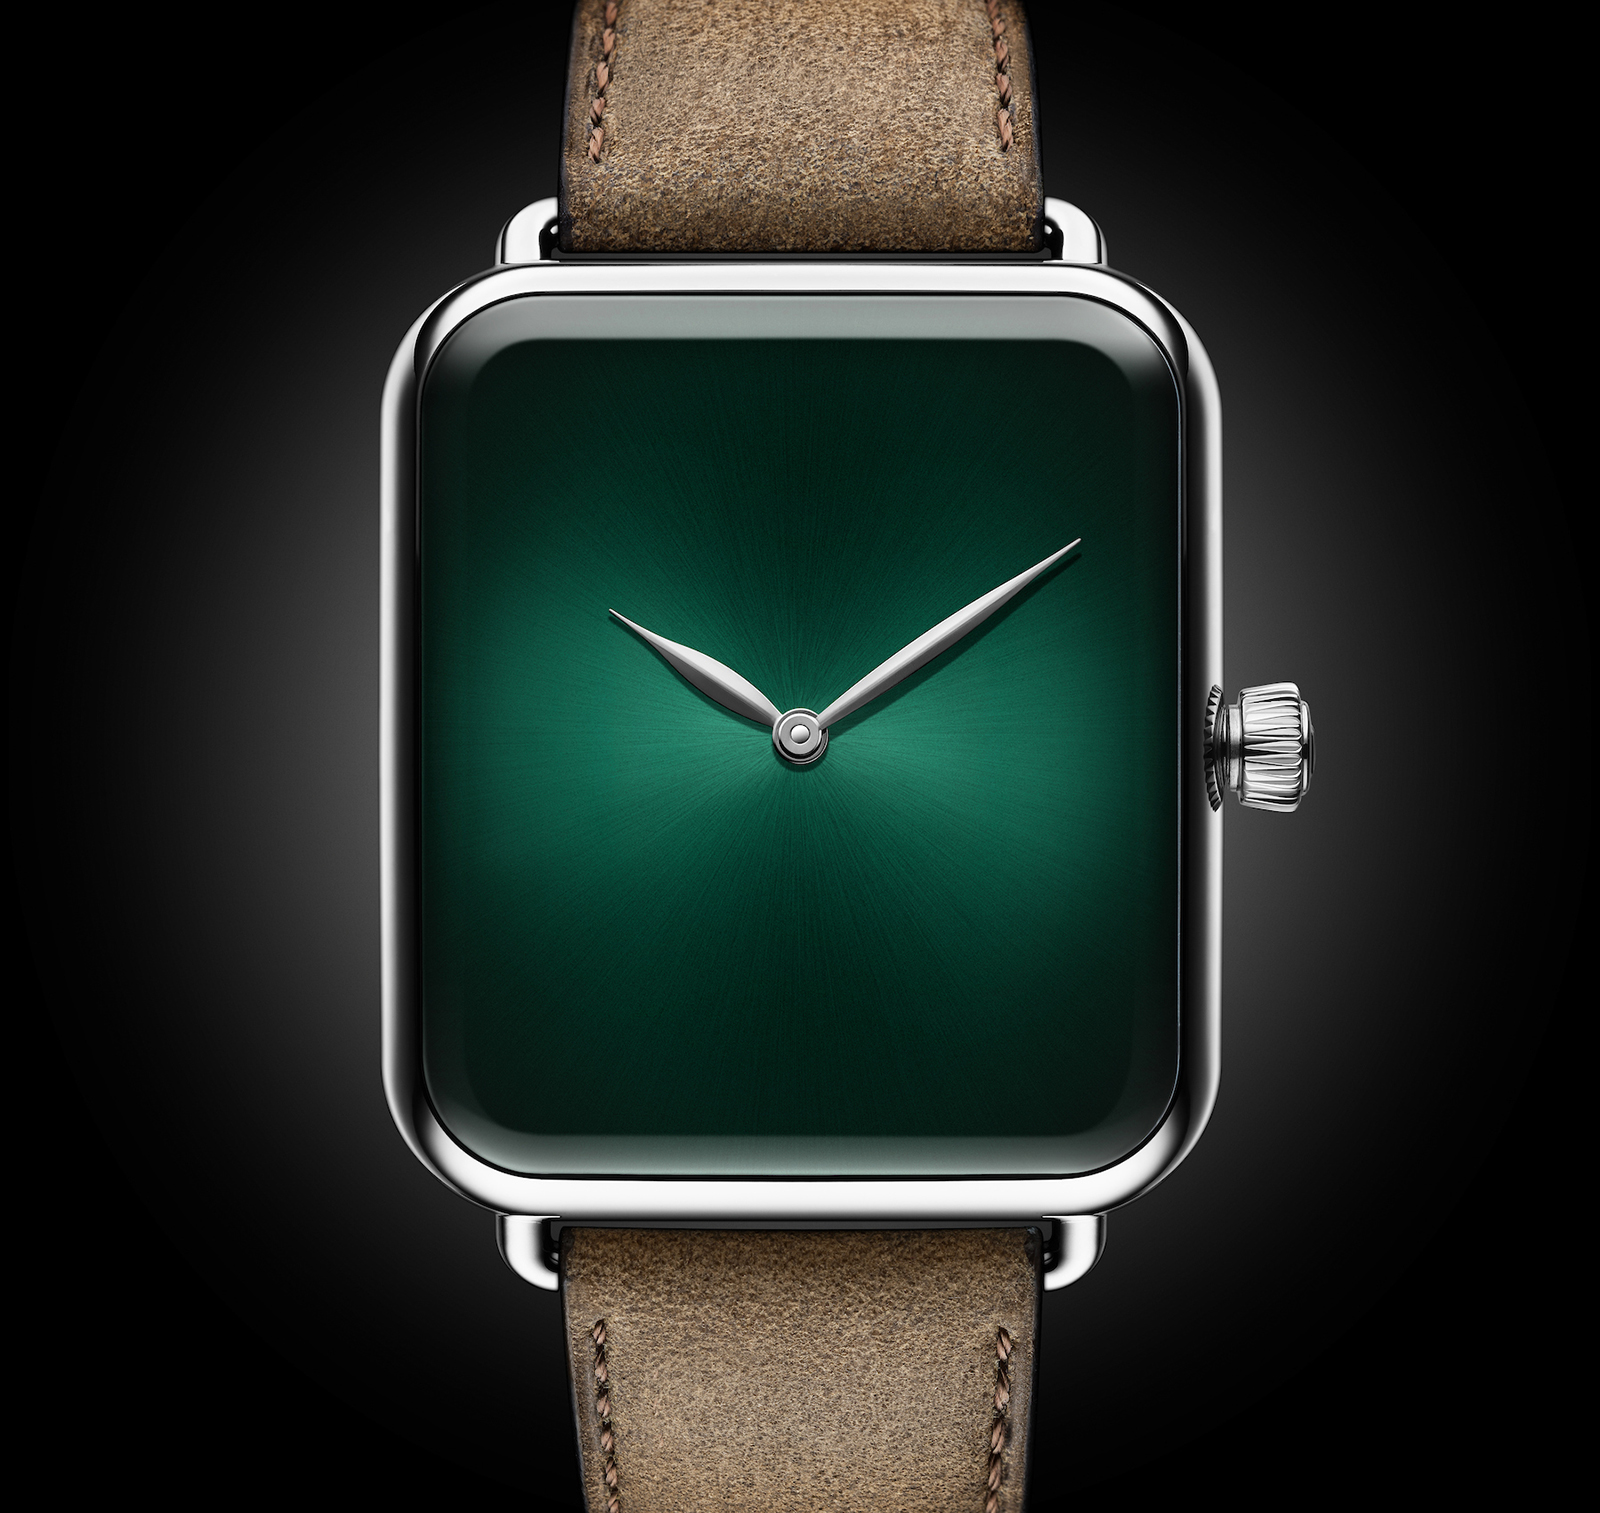 H. Moser & Cie. Swiss Alp Watch_5324-0210_Lifestyle_1